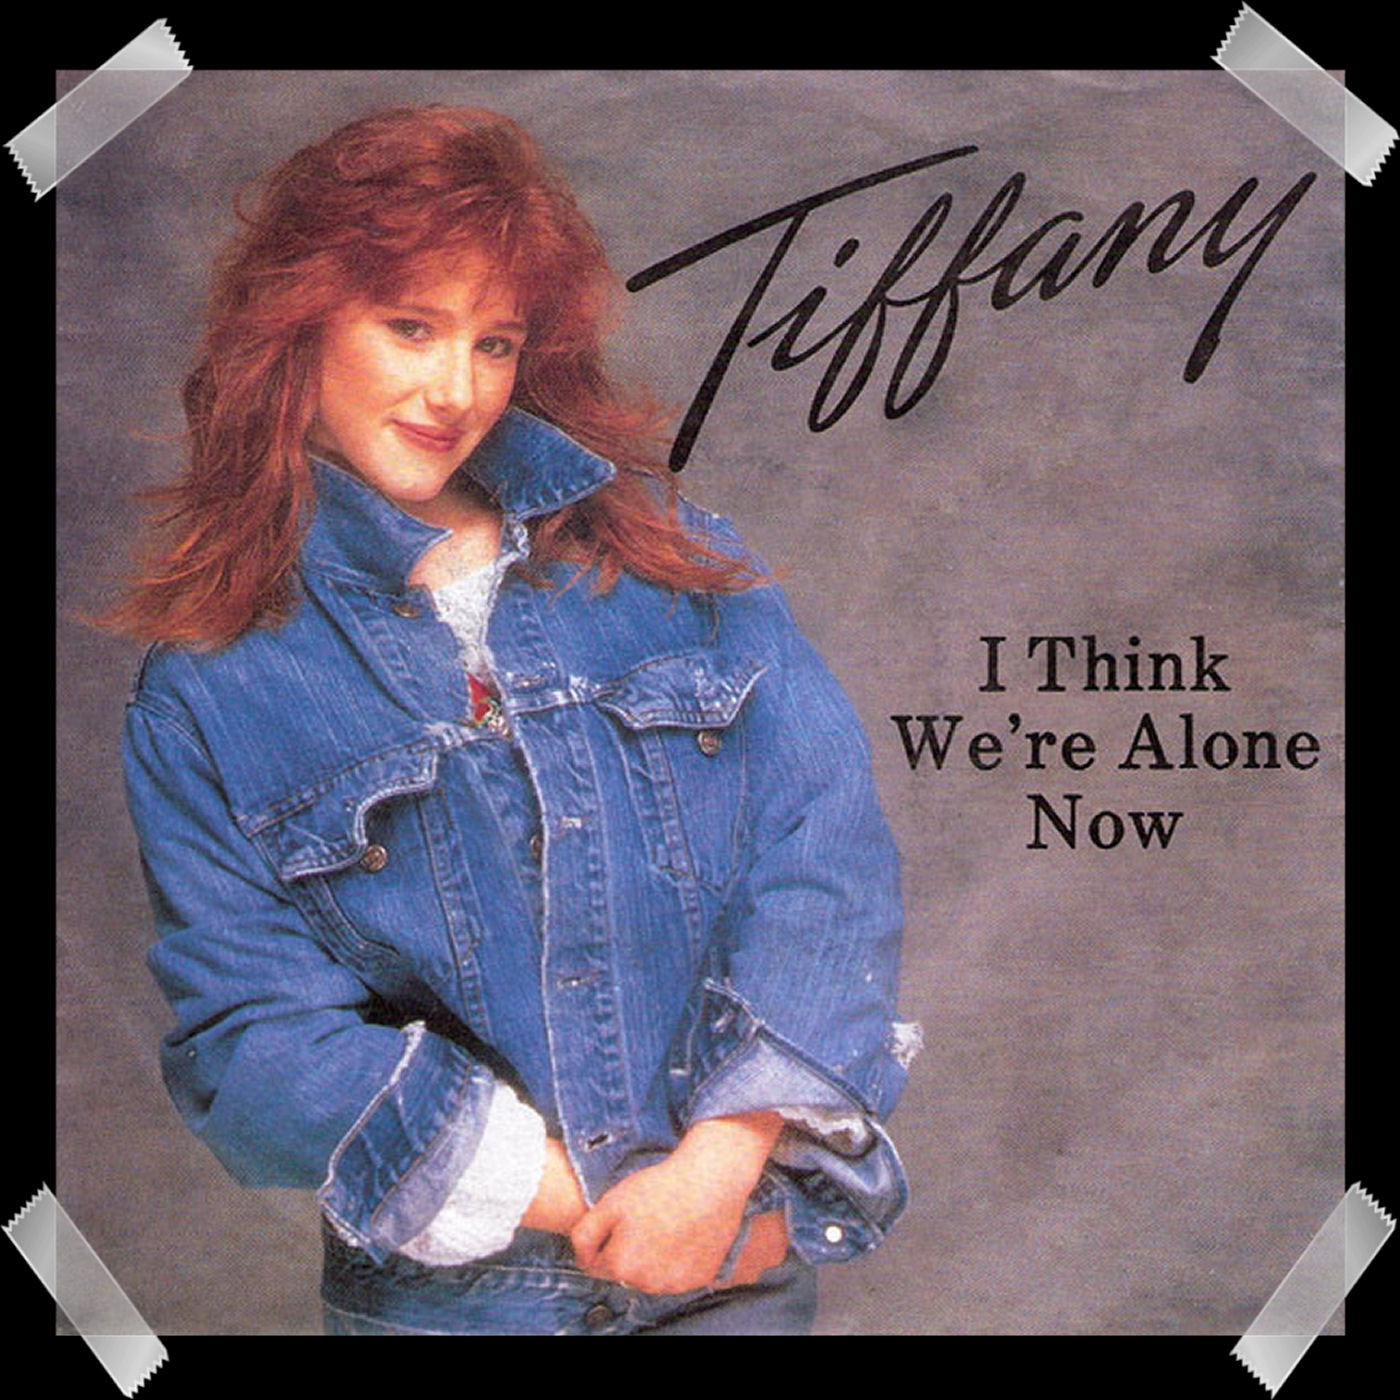 23. Tiffany - I Think We're Alone Now